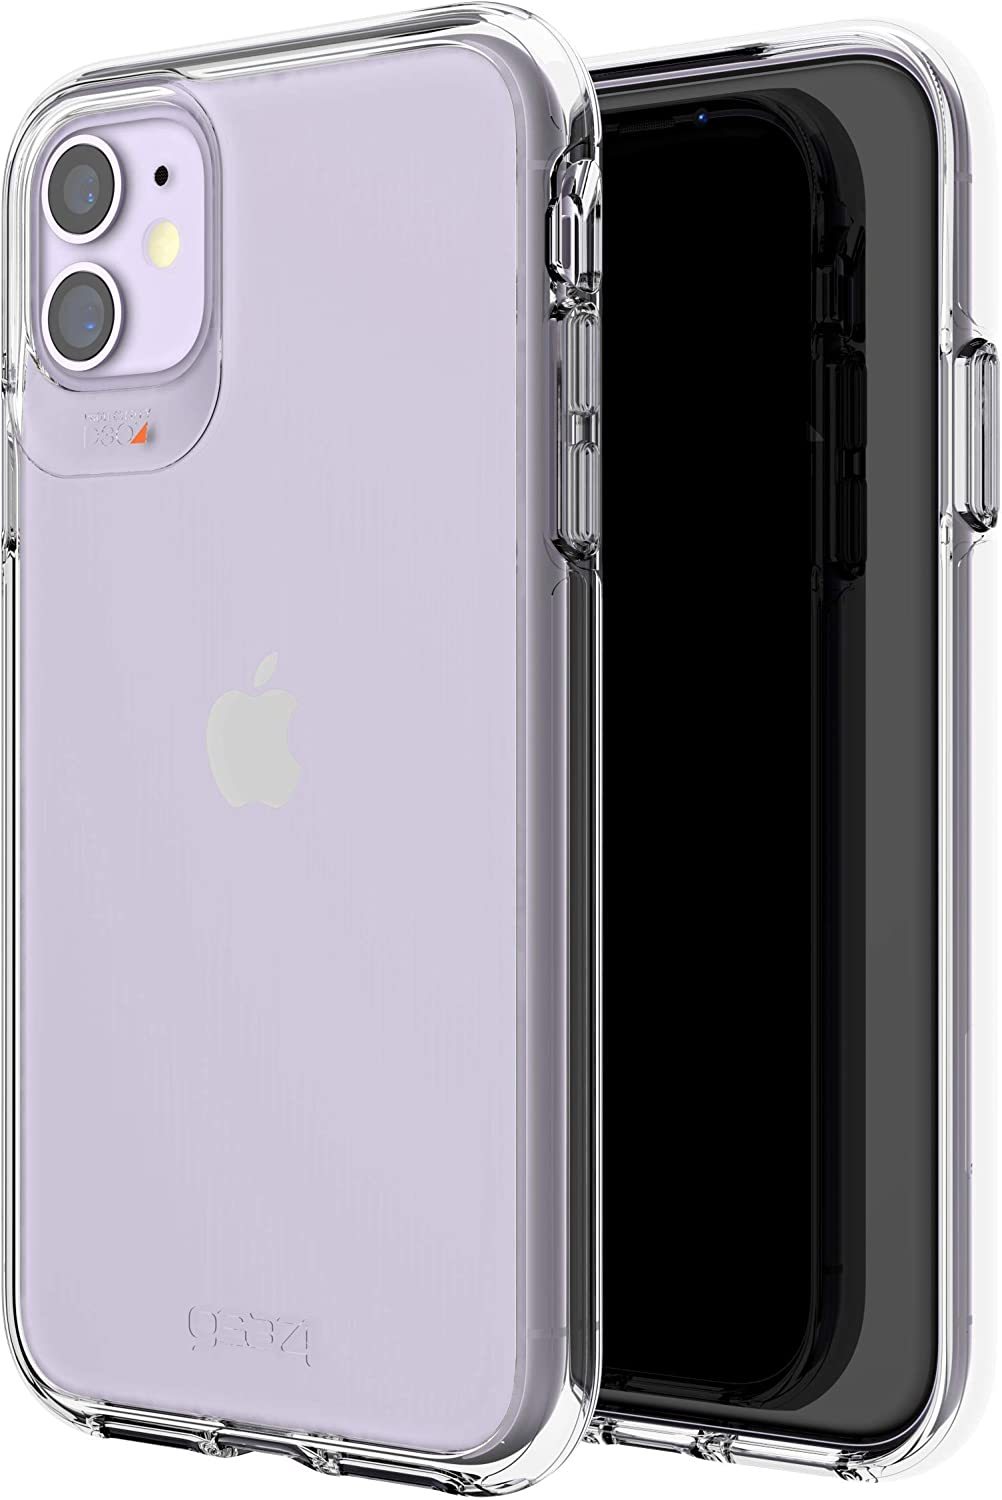 Gear4 Crystal Palace Clear Case with Advanced Impact Protection [ Approved by D3O ], Slim, Tough Design for iPhone 12 Pro, iPhone 12 – Clear